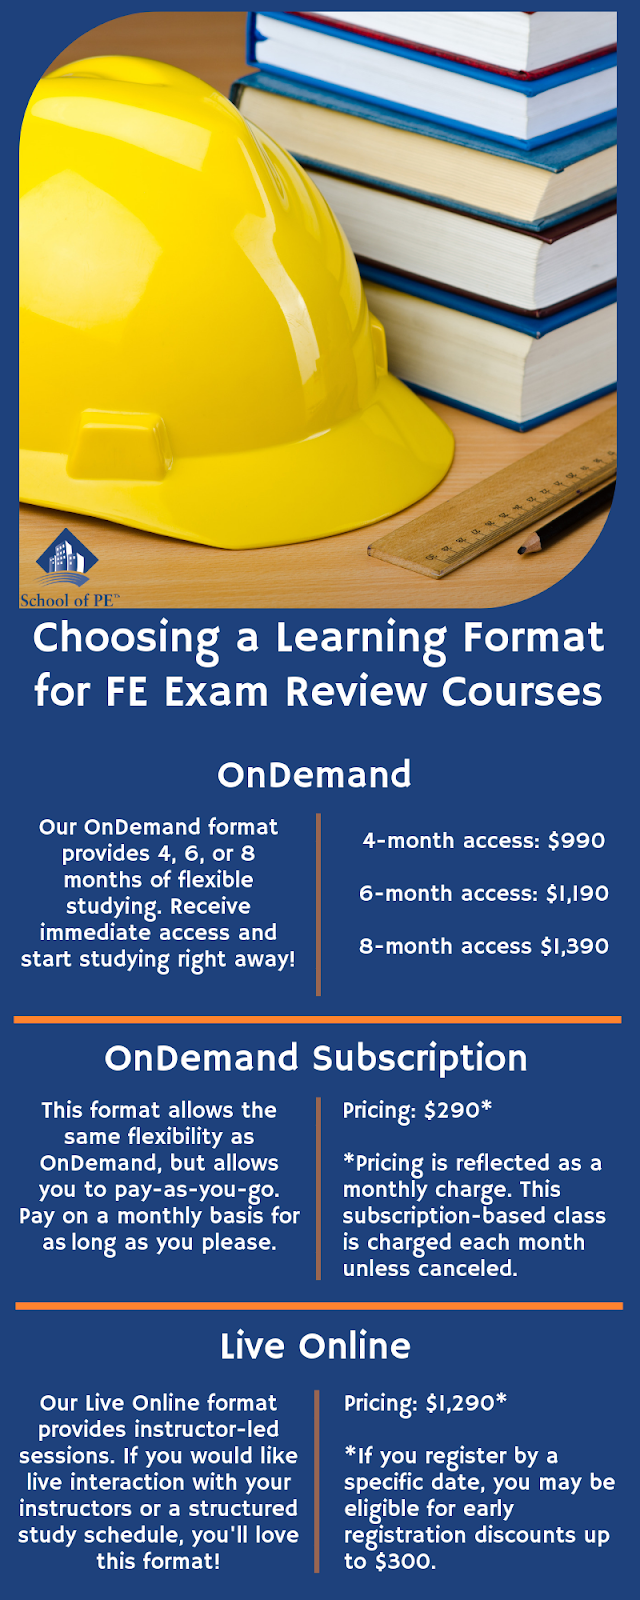 School of PE offers a variety of learning formats to prepare exam applicants for the FE Exam. Students may choose from OnDemand, OnDemand Subscriptions, and Live Online when signing up for an FE exam review course.